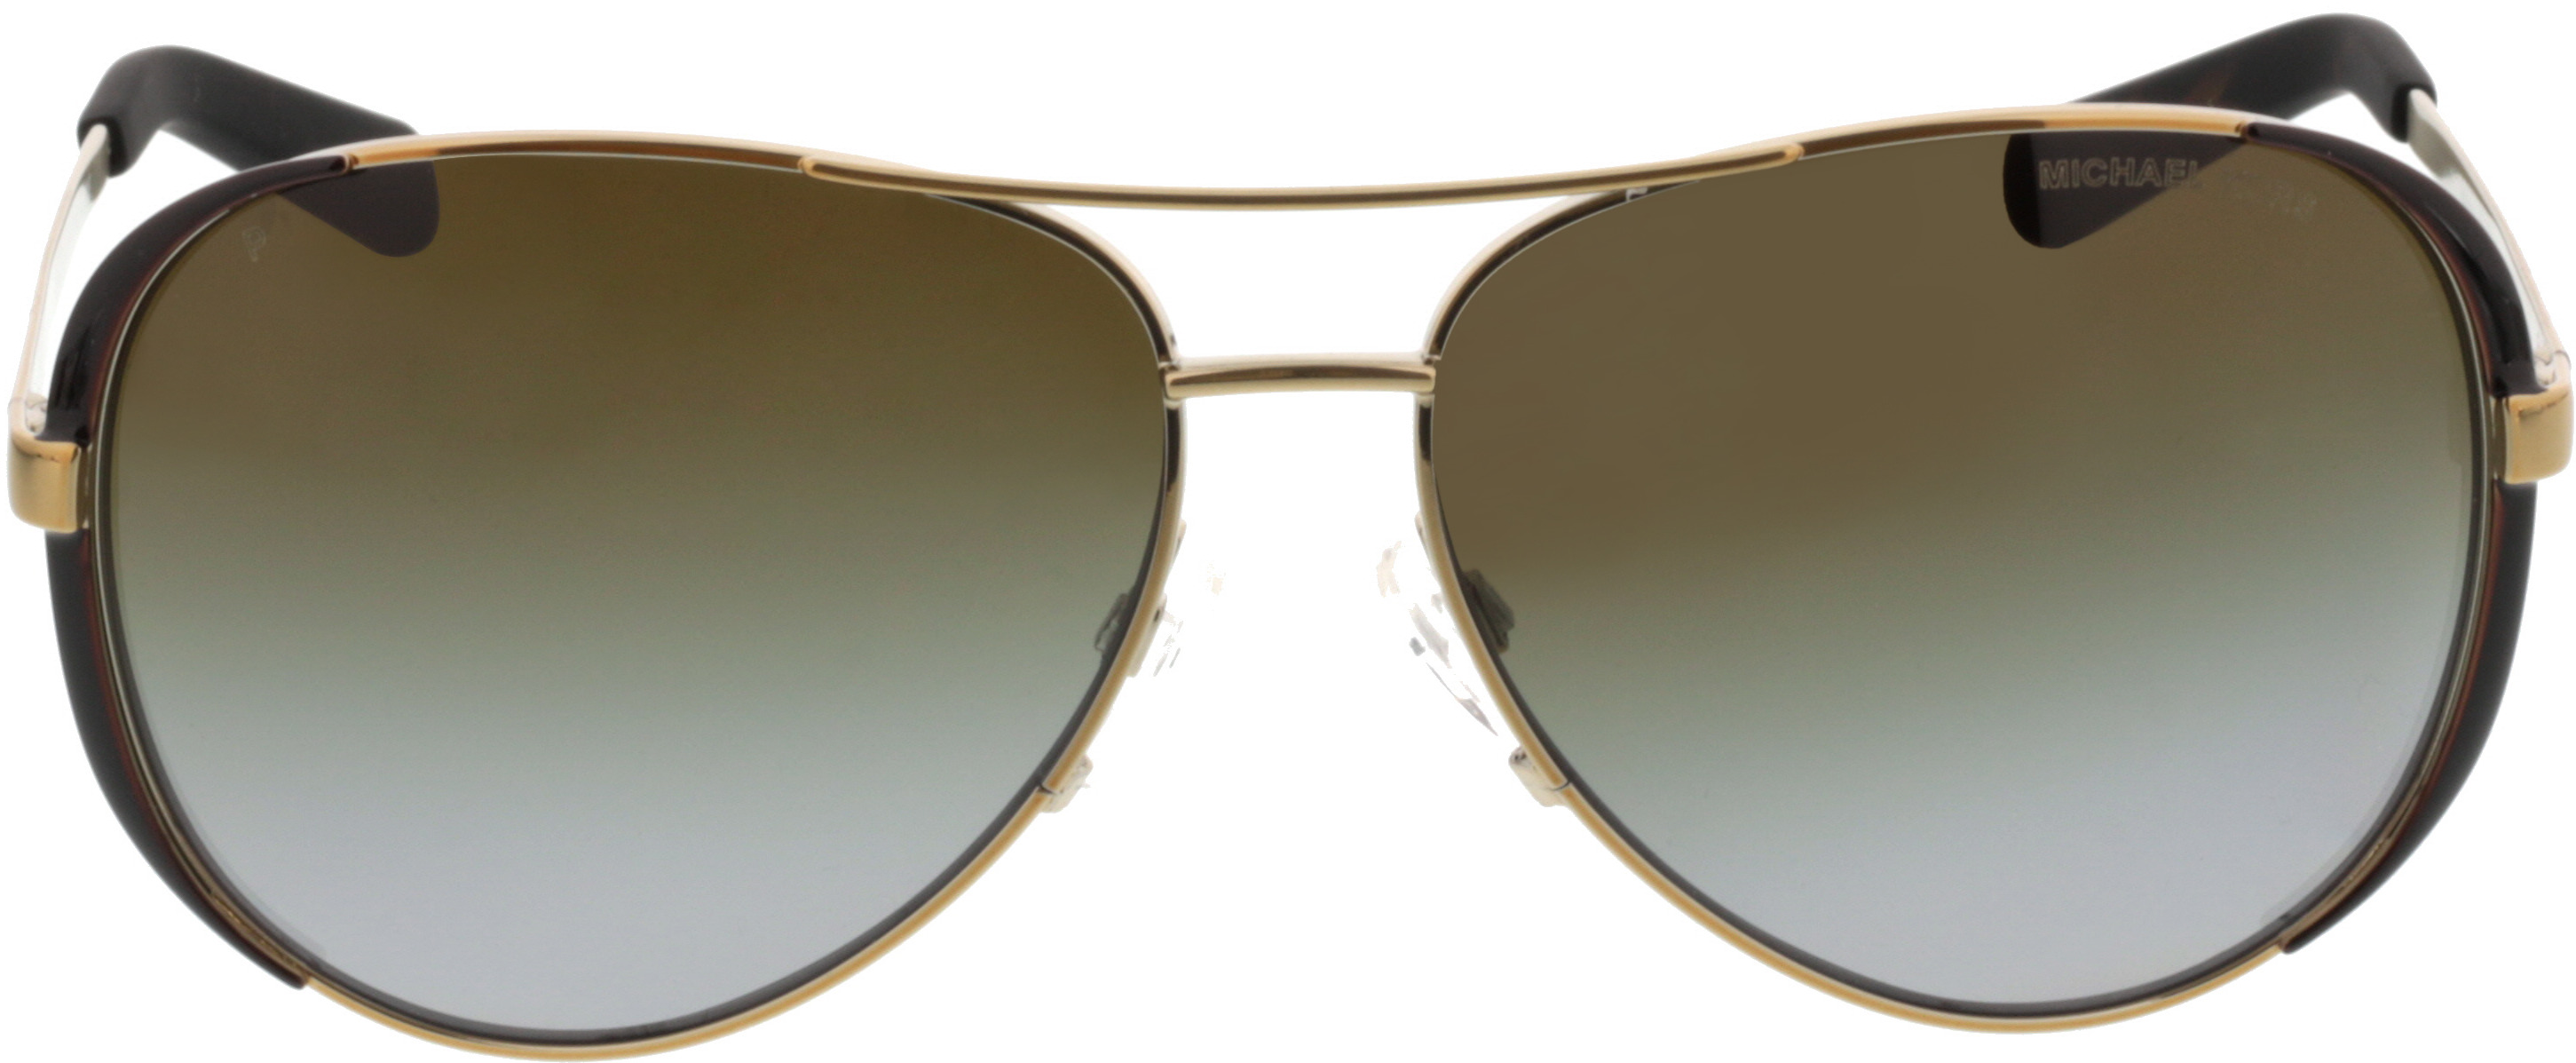 Picture of glasses model Michael Kors Chelsea MK5004 1014T5 59-13 in angle 0